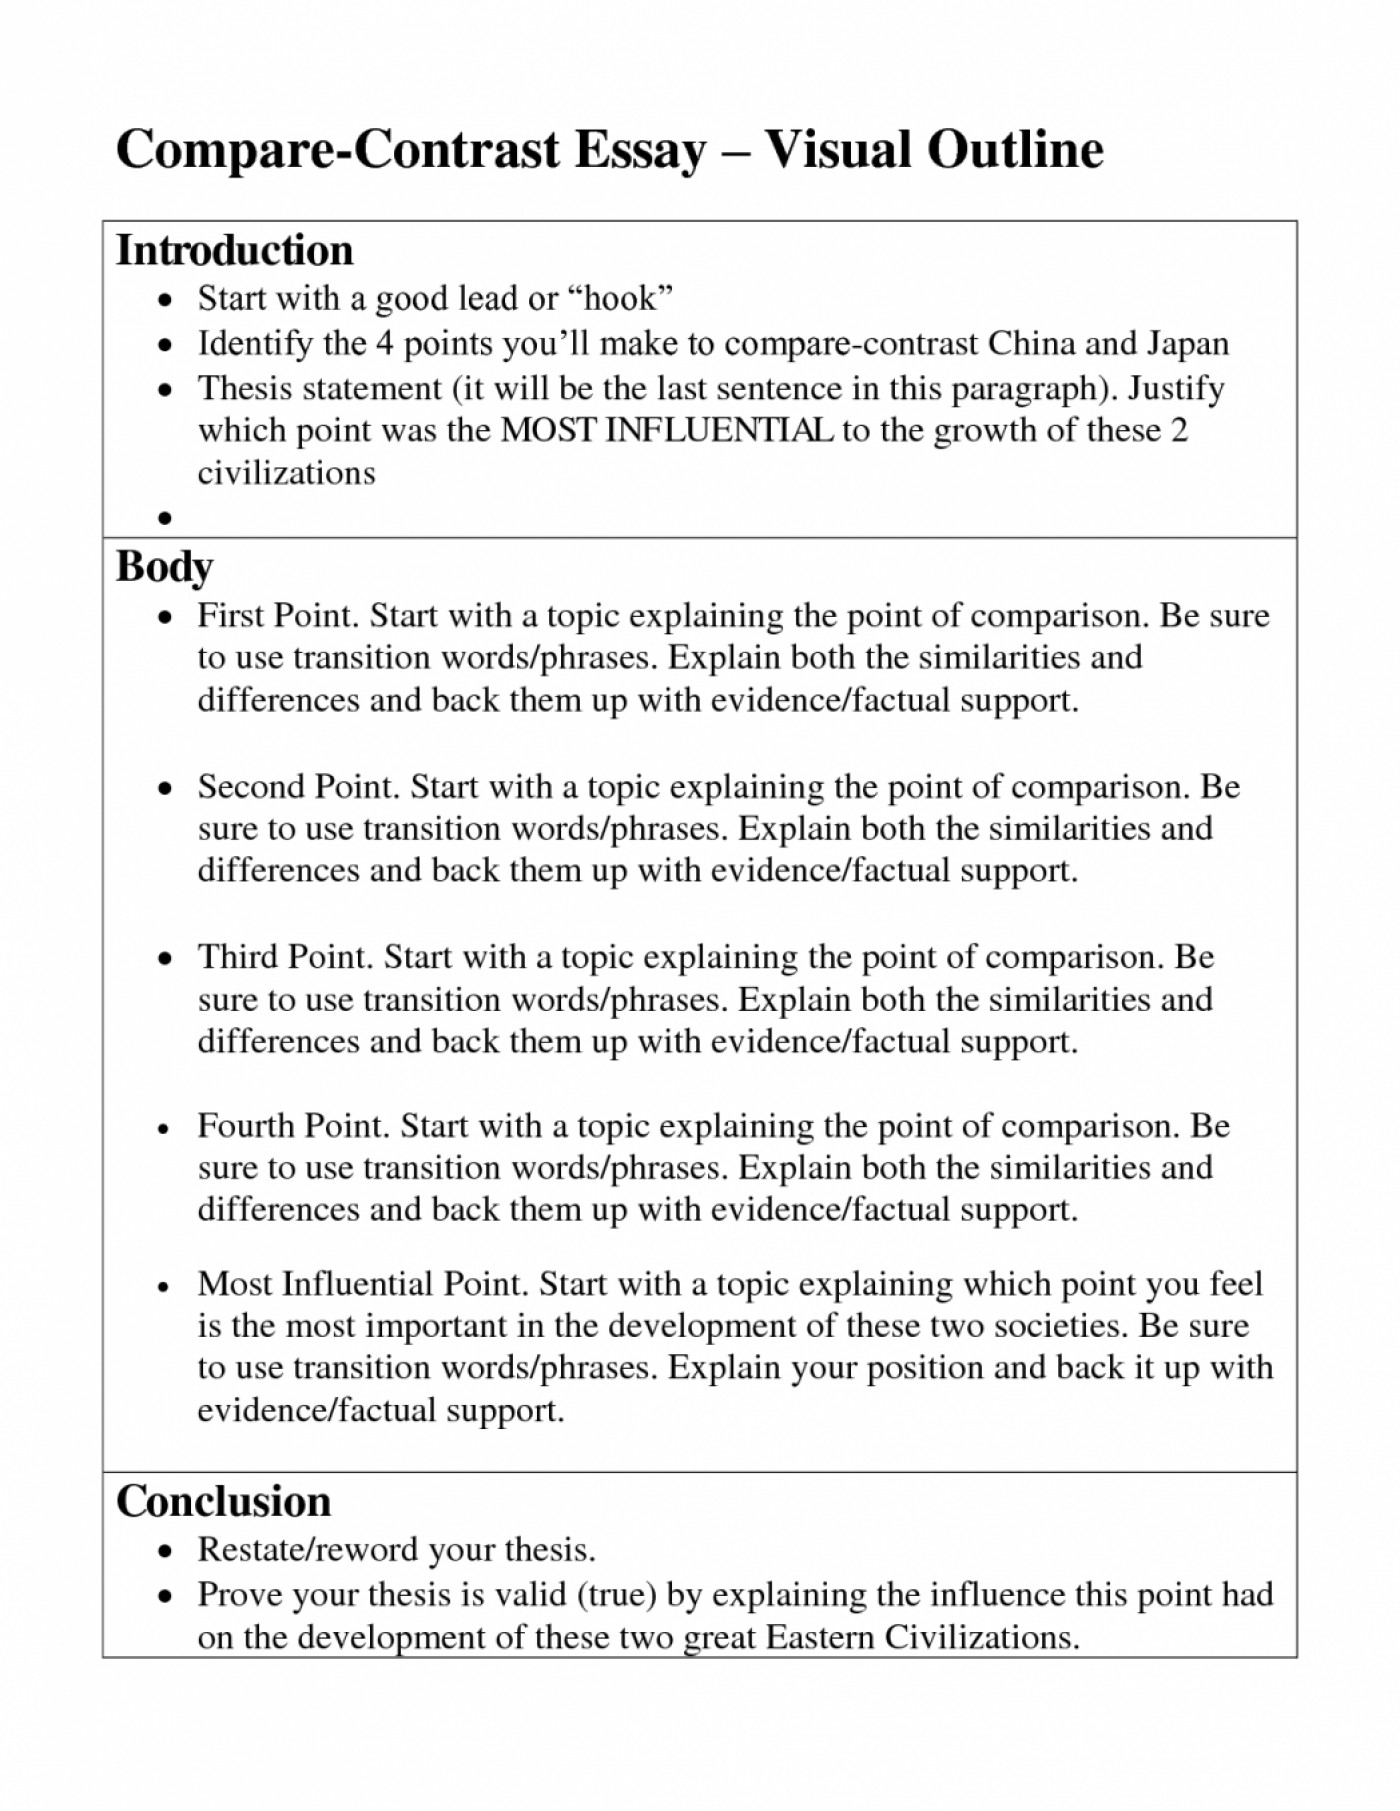 009 Compare And Contrast Essay Topics For High School Students English College Pdf Research Paper 1048x1356 Fantastic Ielts 1400